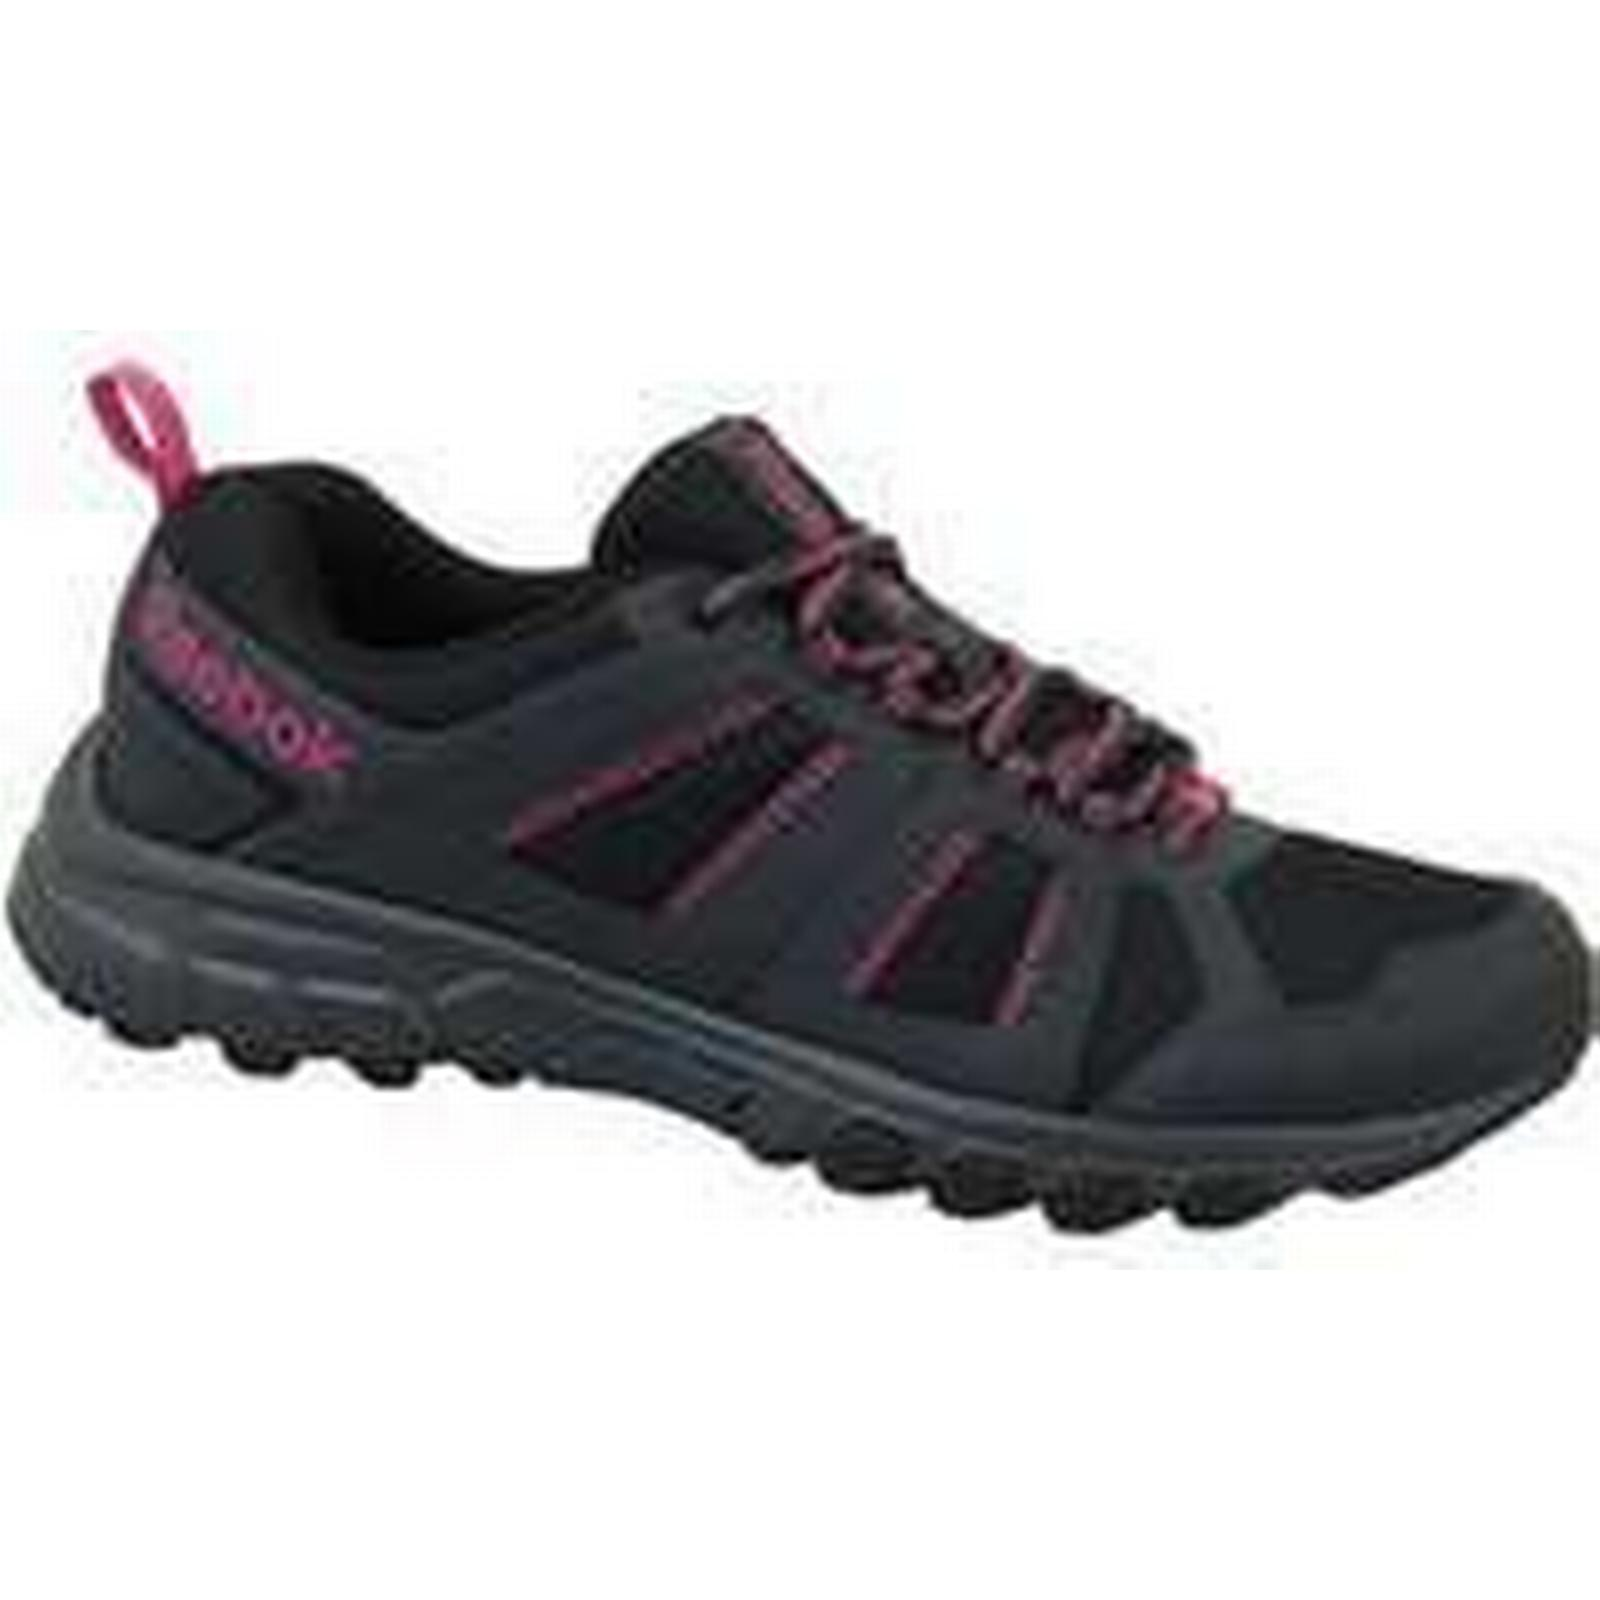 Spartoo.co.uk RS Reebok Sport Dxride Comfort RS Spartoo.co.uk 30 women's Shoes (Trainers) in Black 8fbe7b